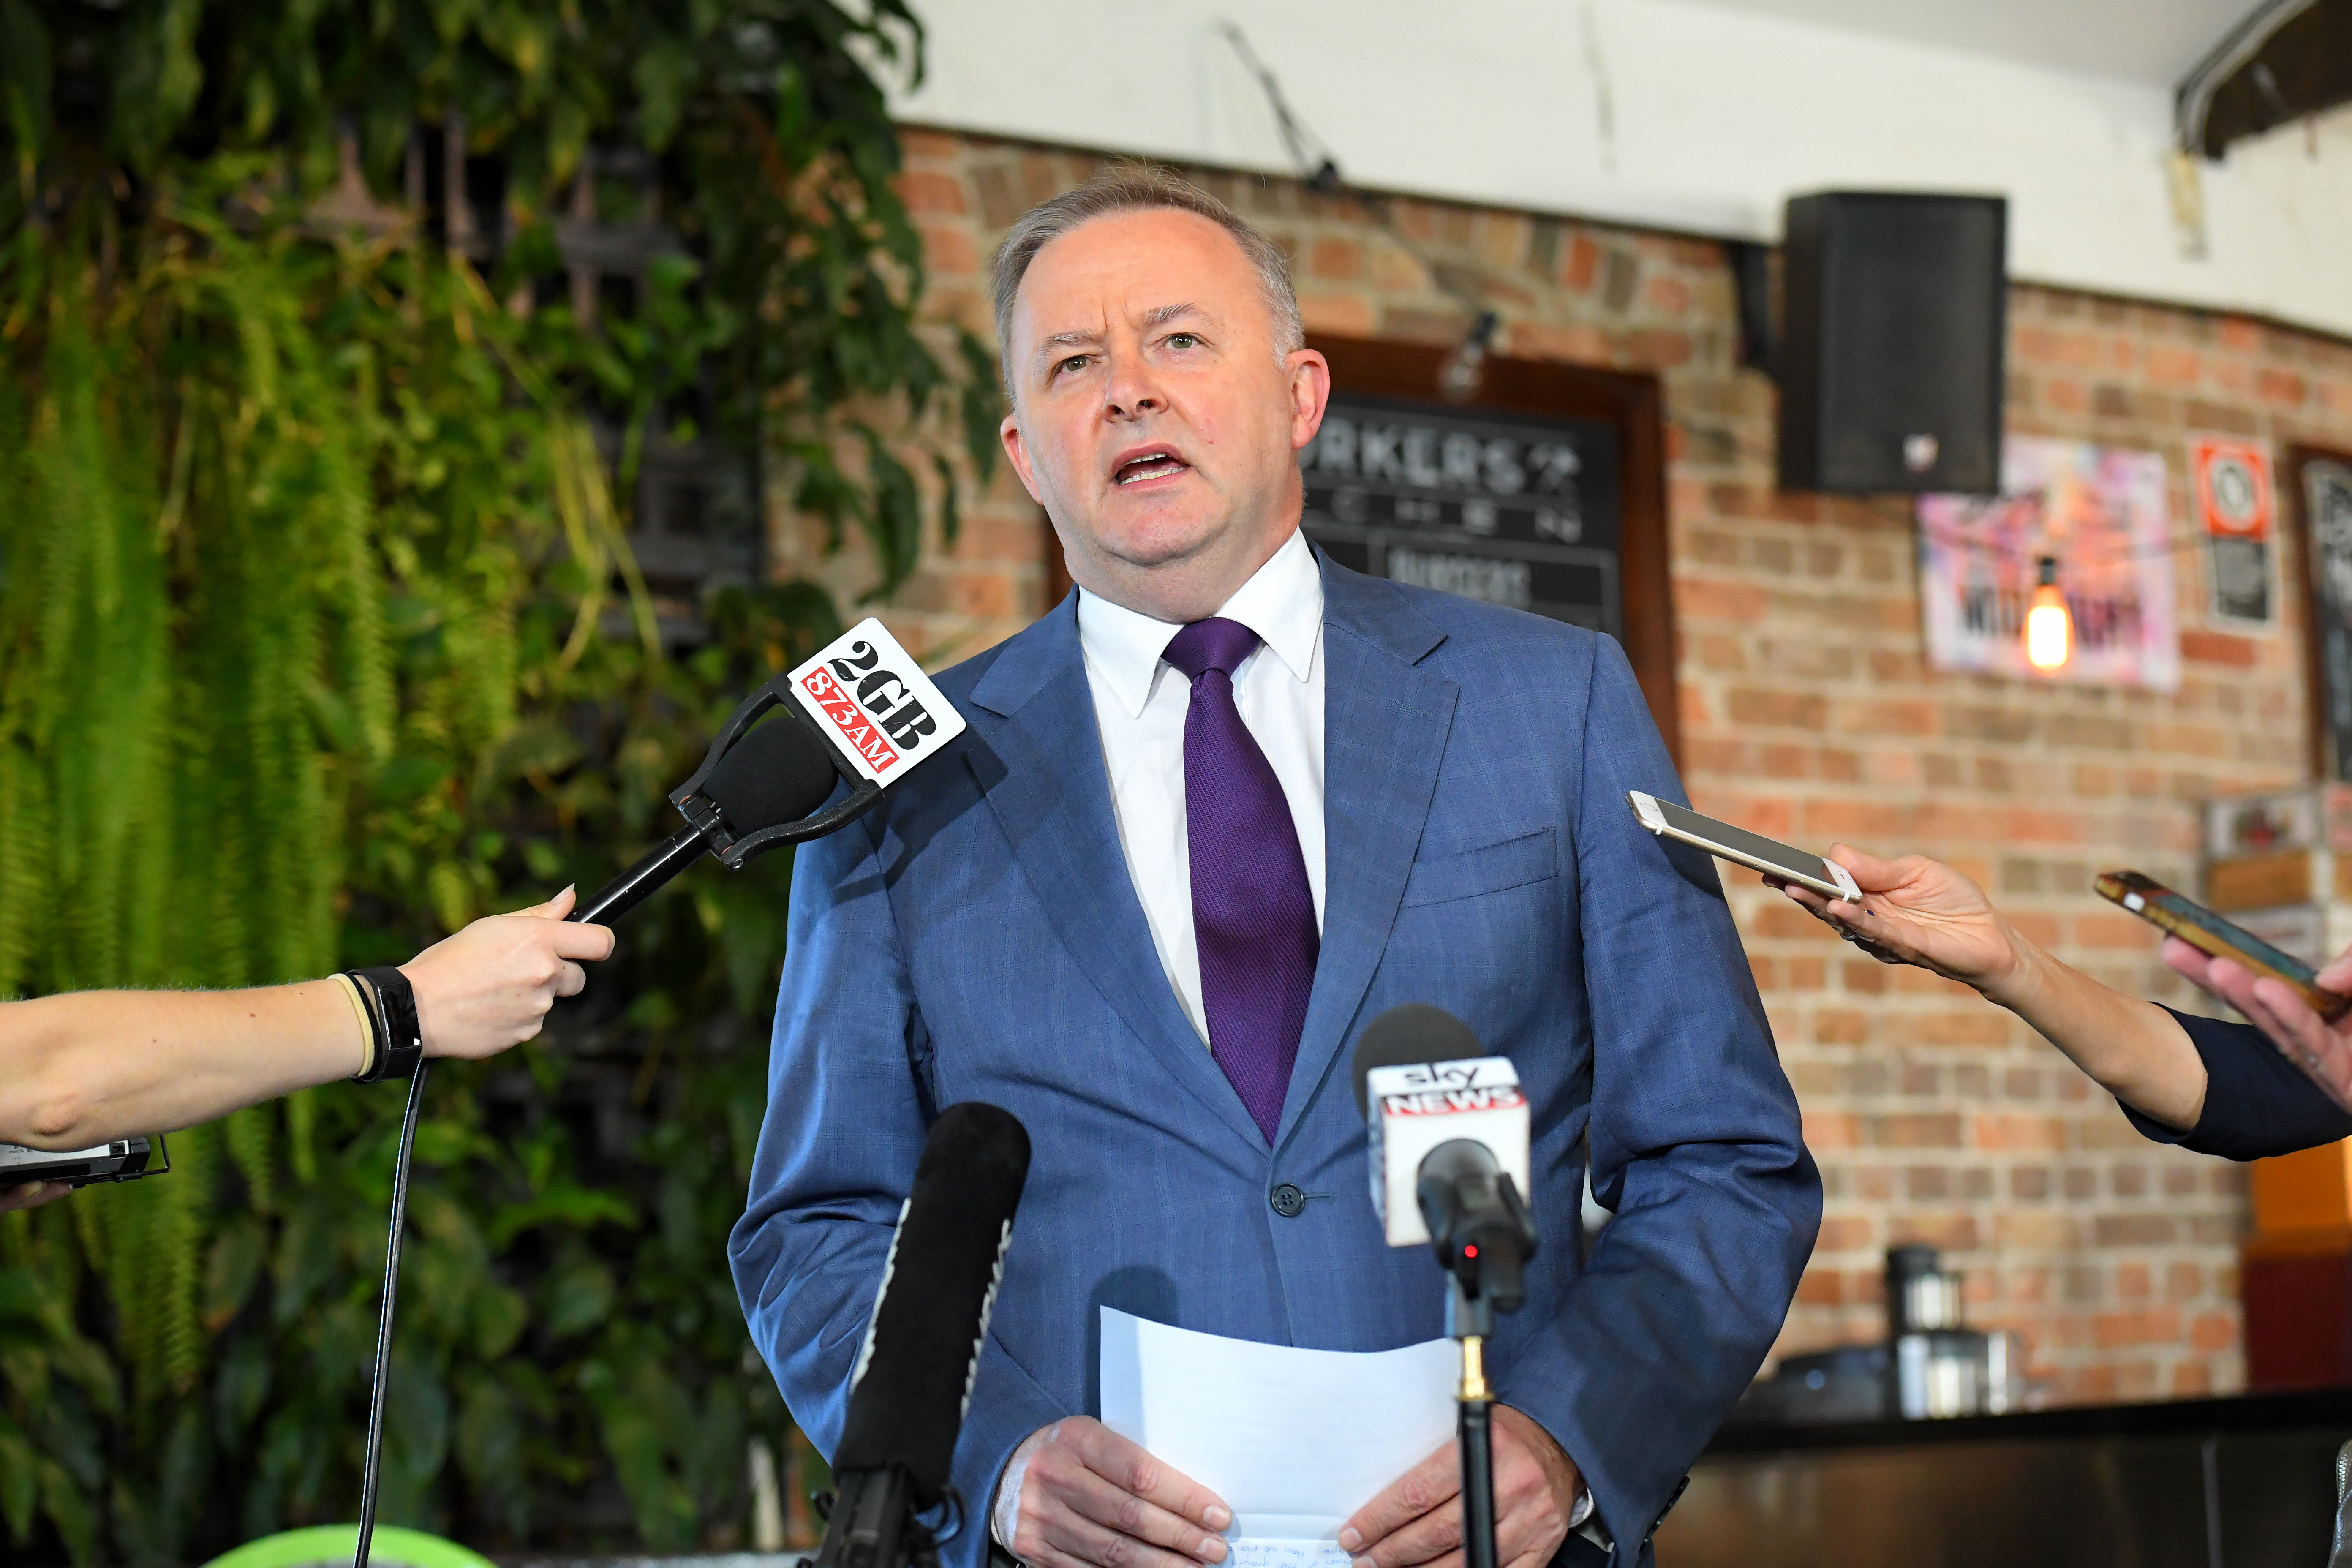 Anthony Albanese makes bid for Labor leadership following